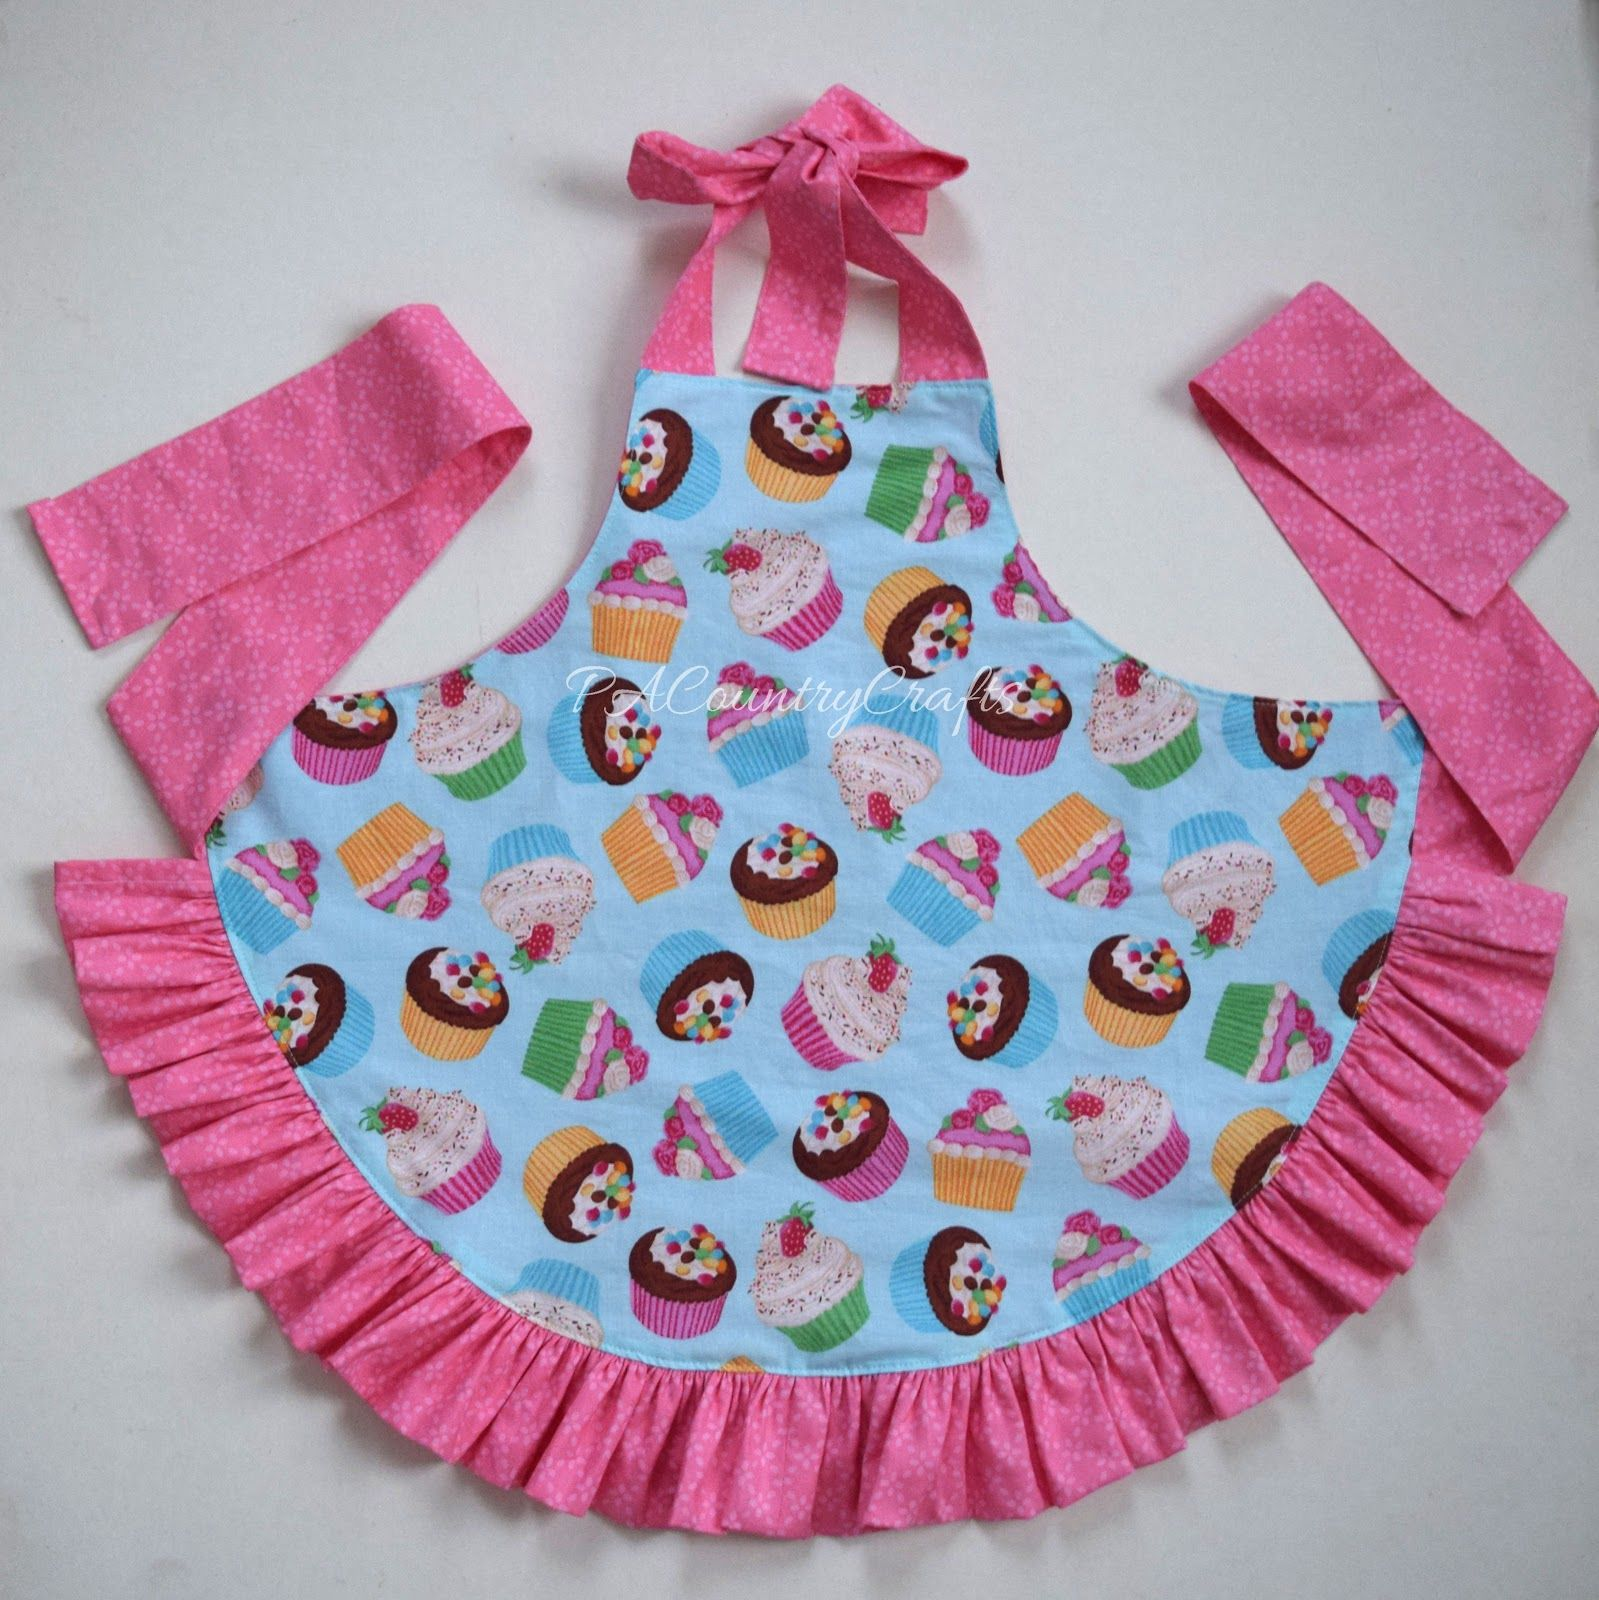 My 4yo has been not so patiently waiting for her new apron ...